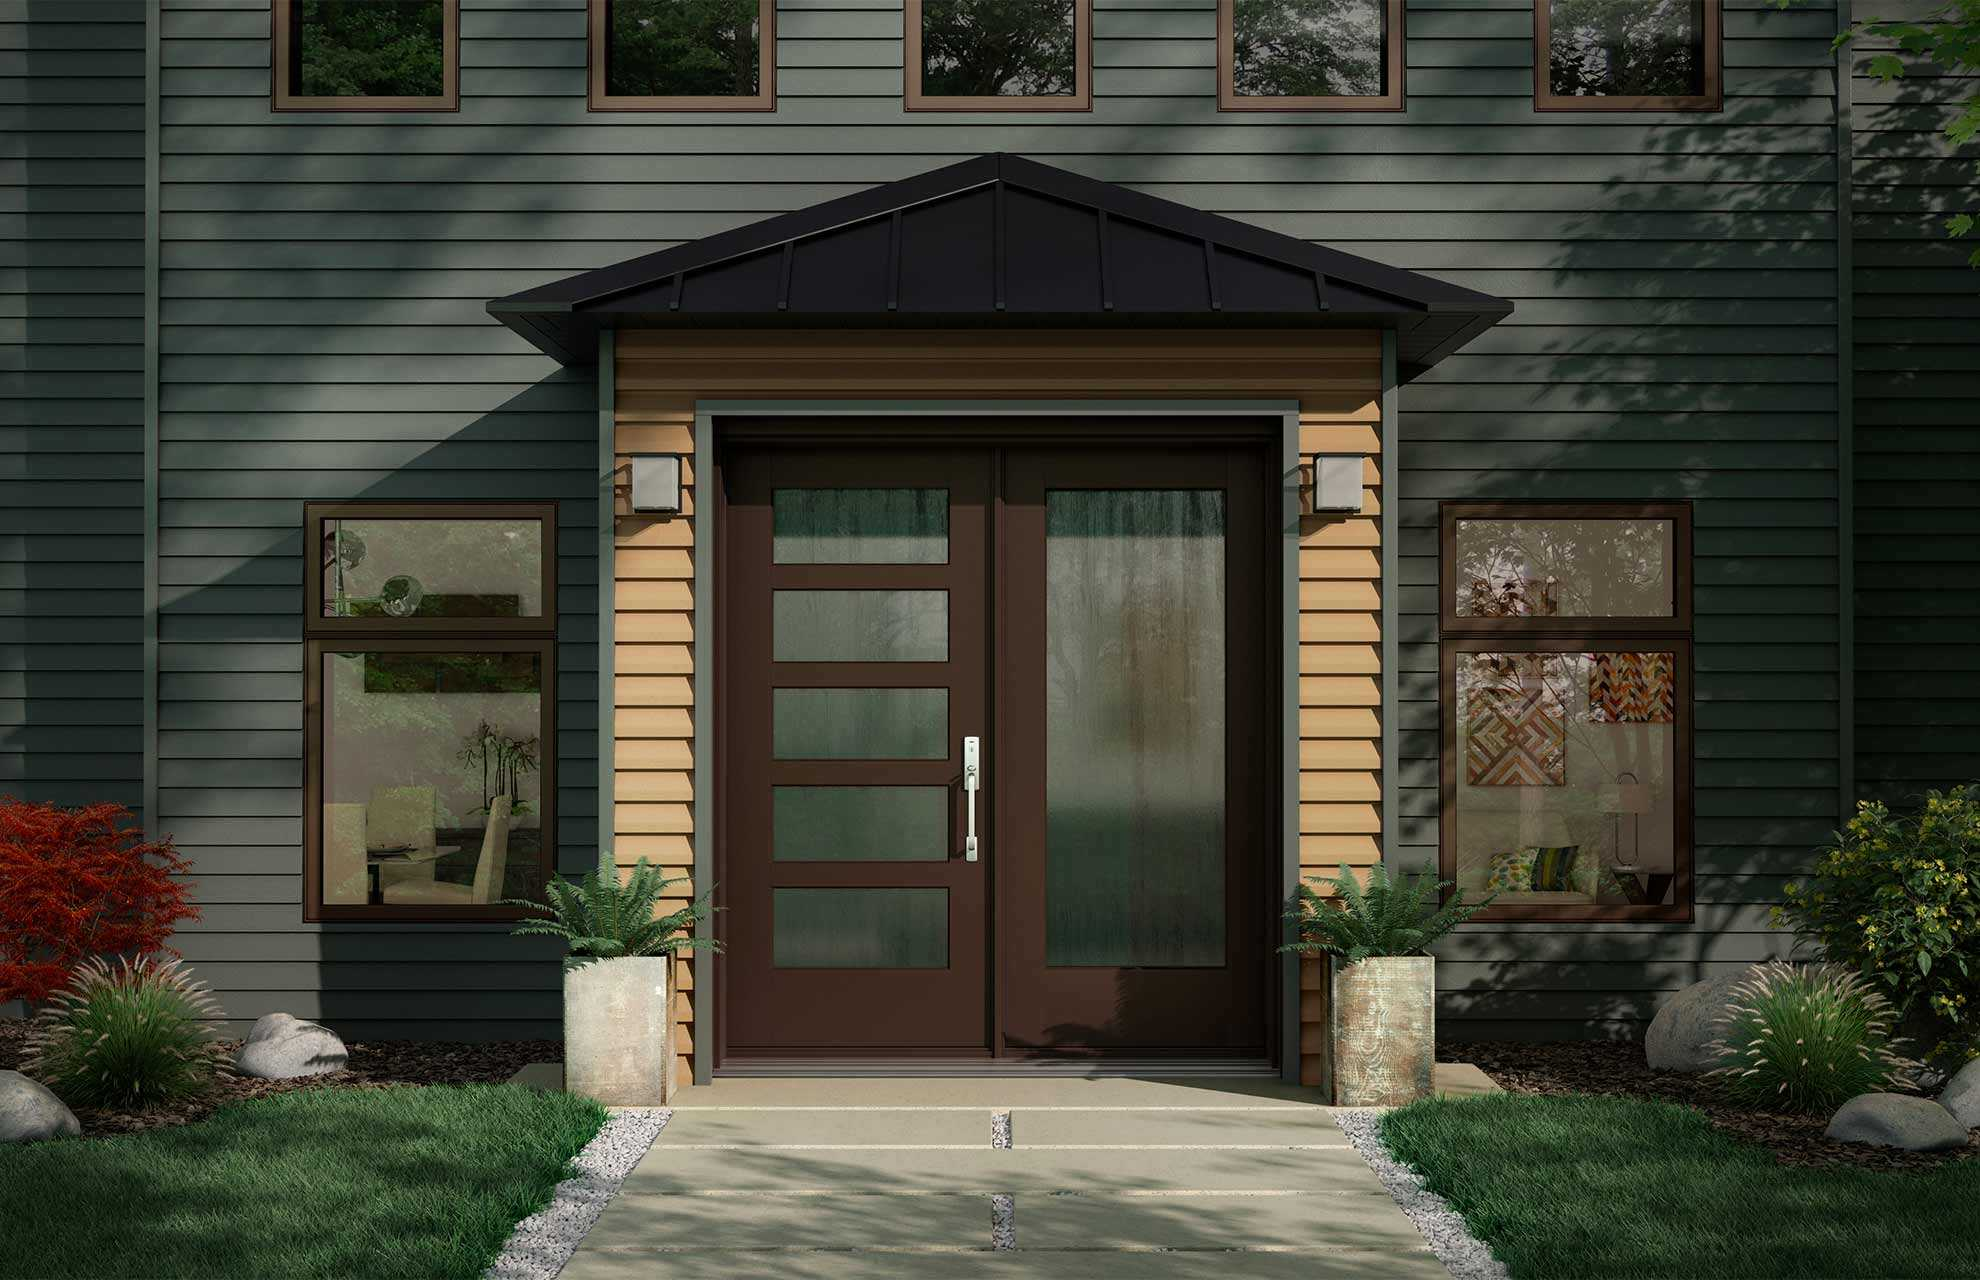 6 Reasons to Transform Your Home With Vinyl Siding on Modern Vinyl Siding  id=91911